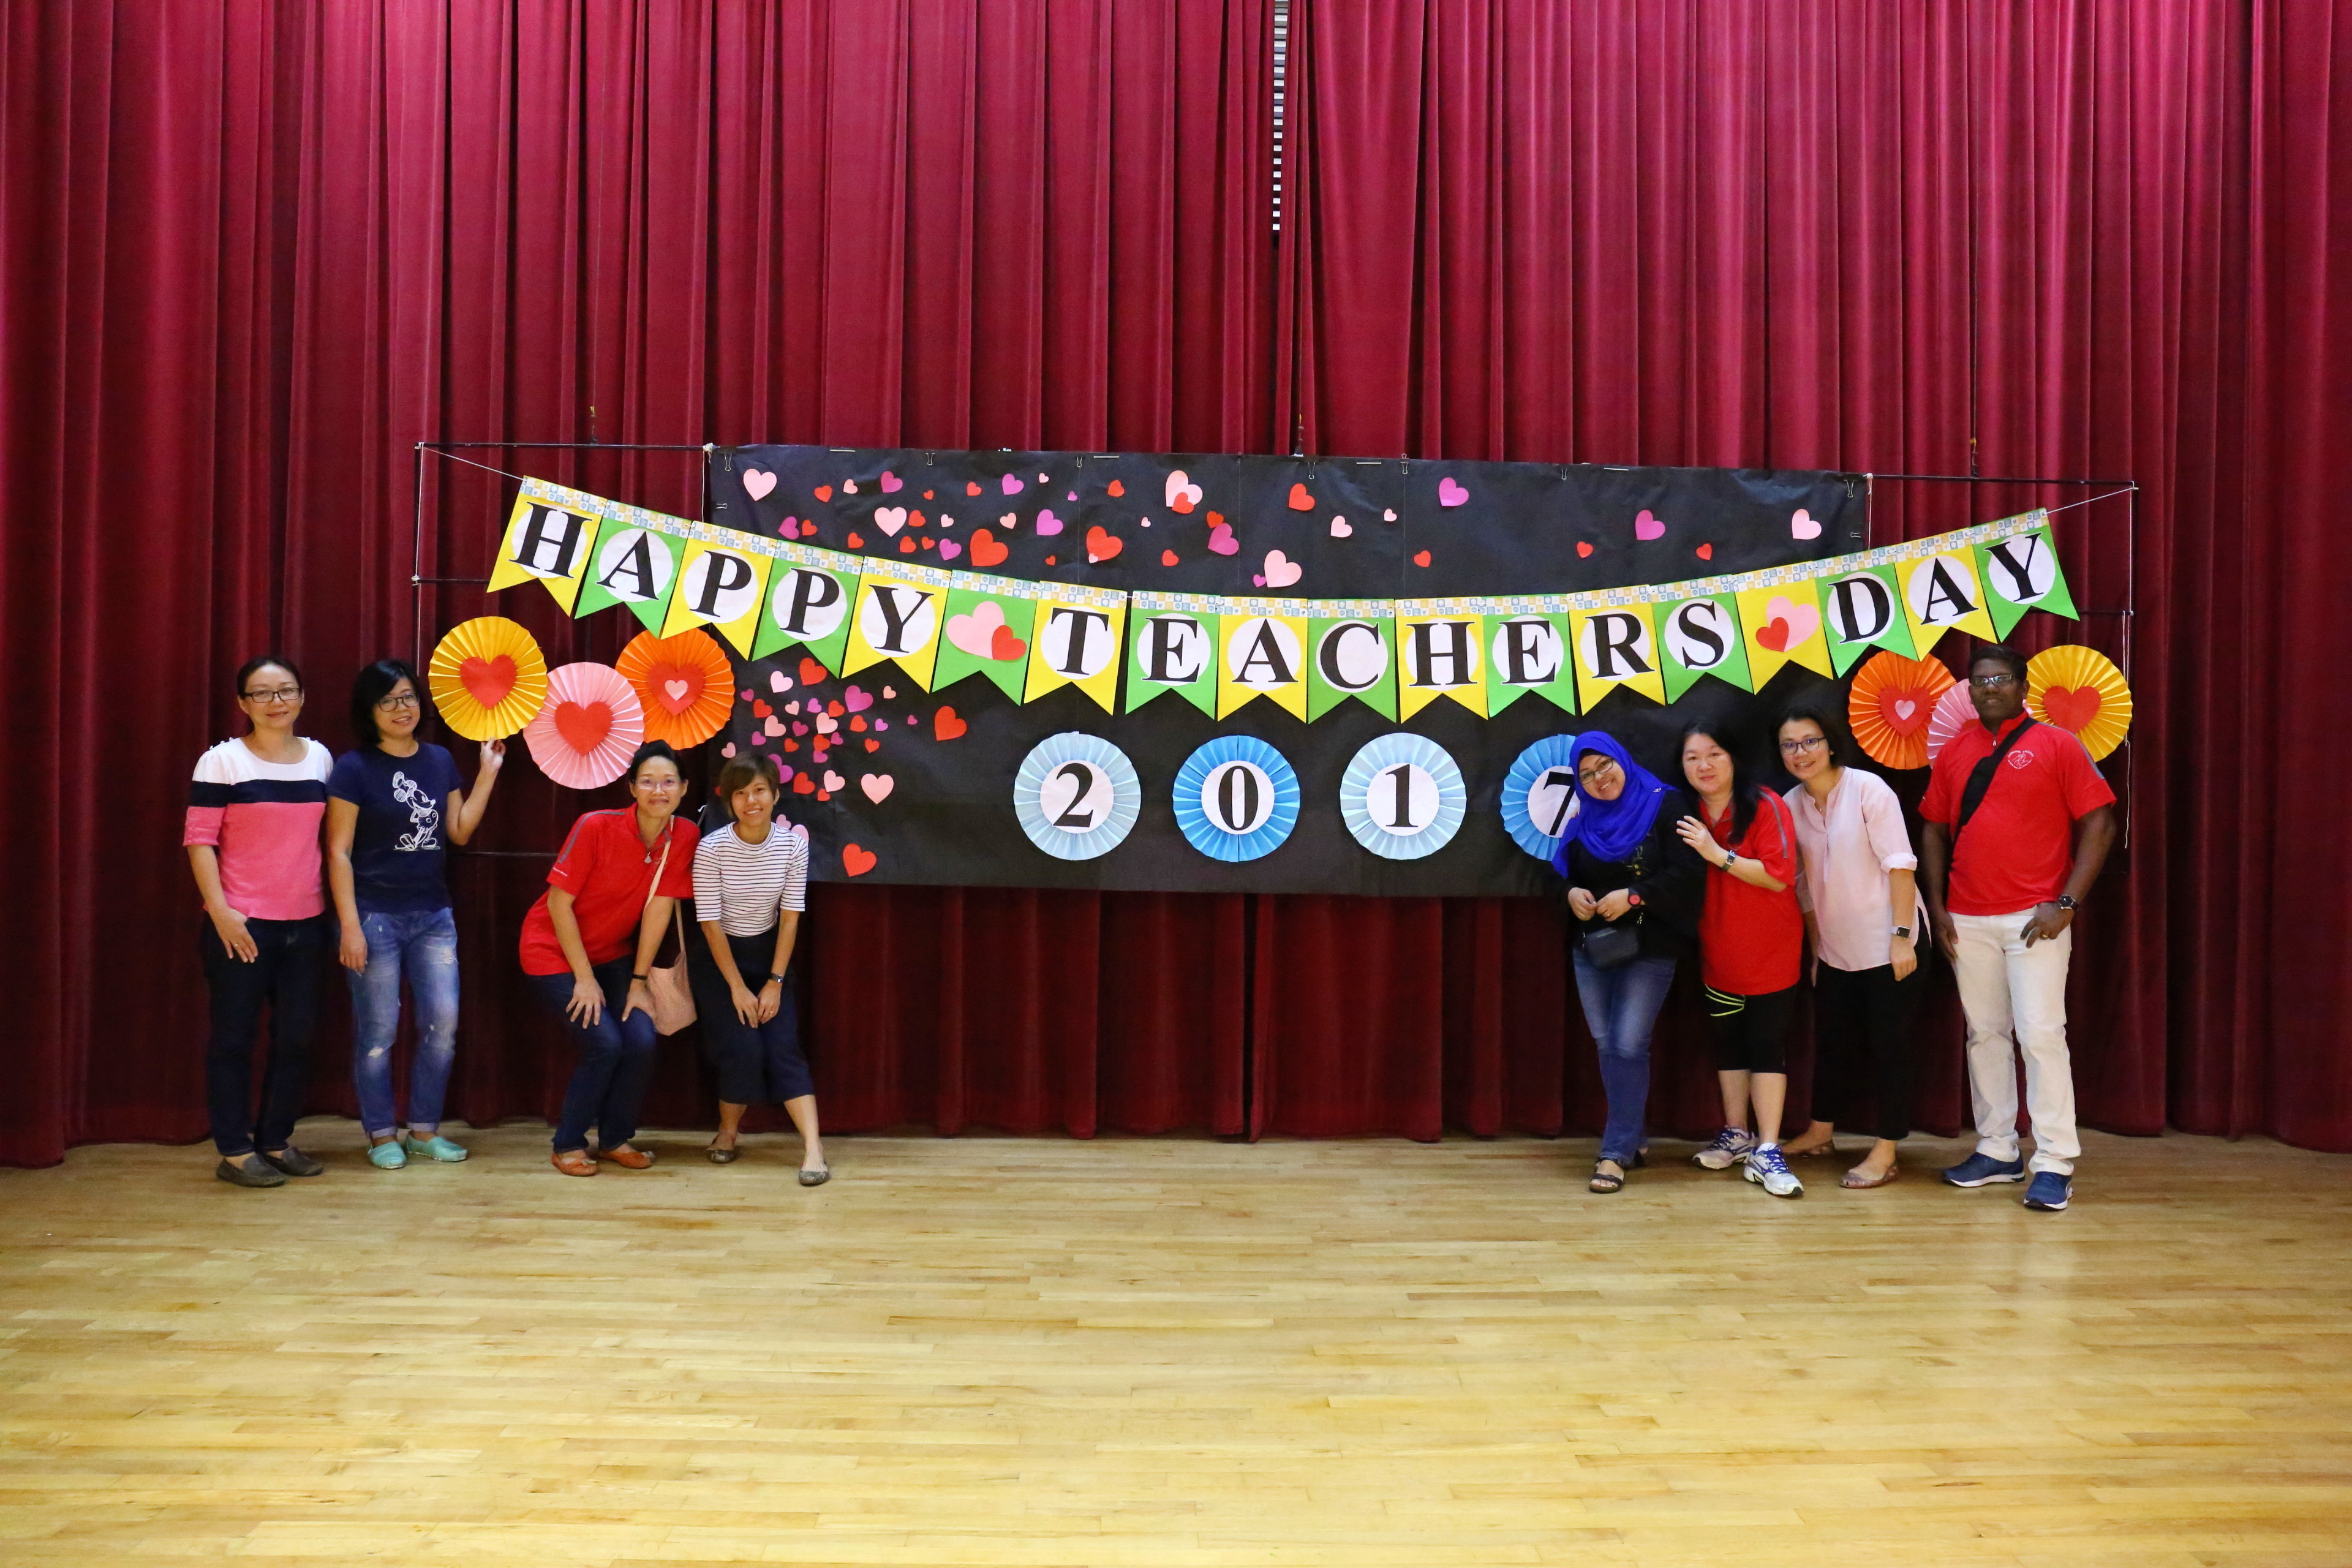 PSG Teachers Day 2017